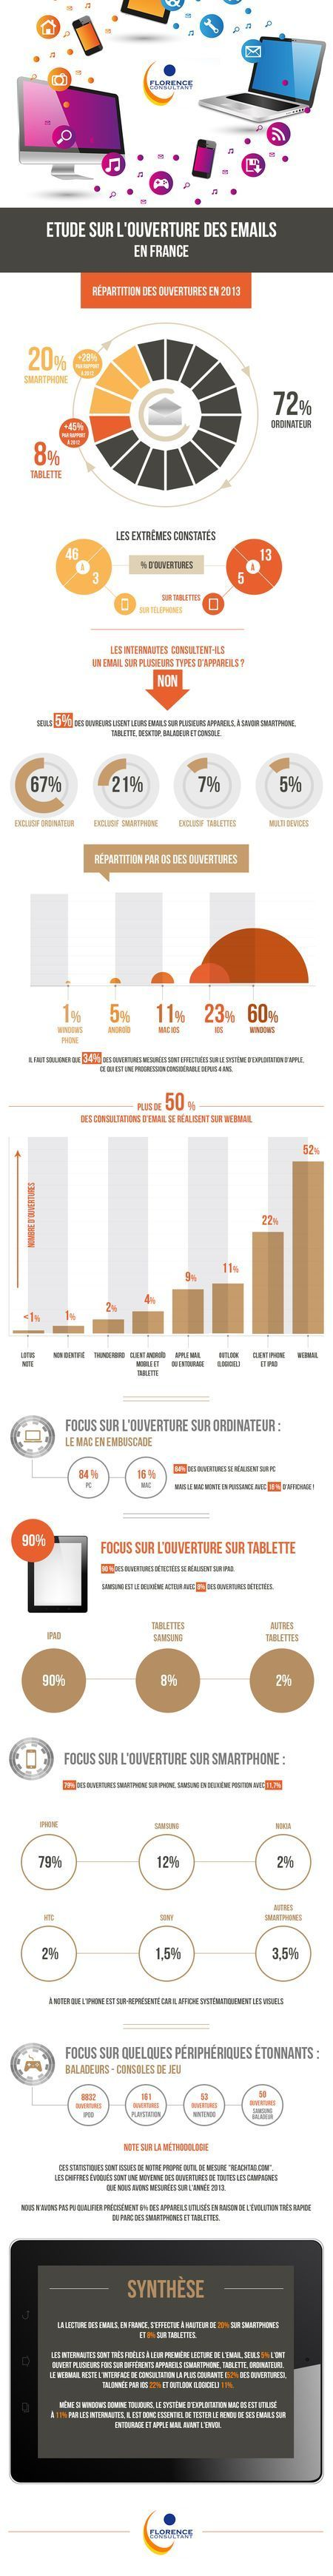 Infographie : contexte d'ouverture des emails en France. | Webmarketing & e-commerce | Scoop.it